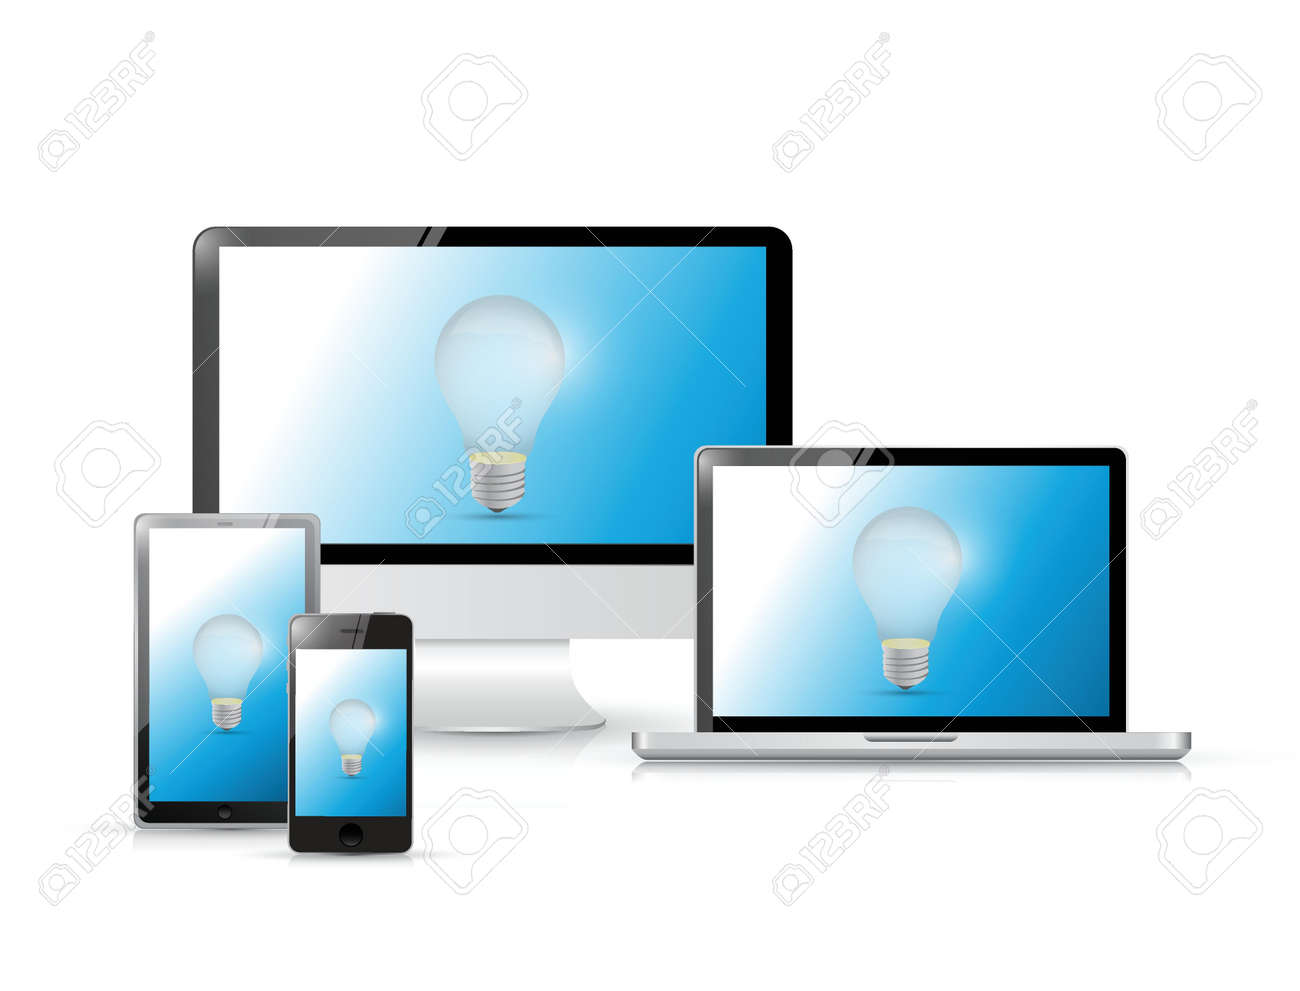 idea icons on a set of electronics illustration design over a white background Stock Vector - 20530595